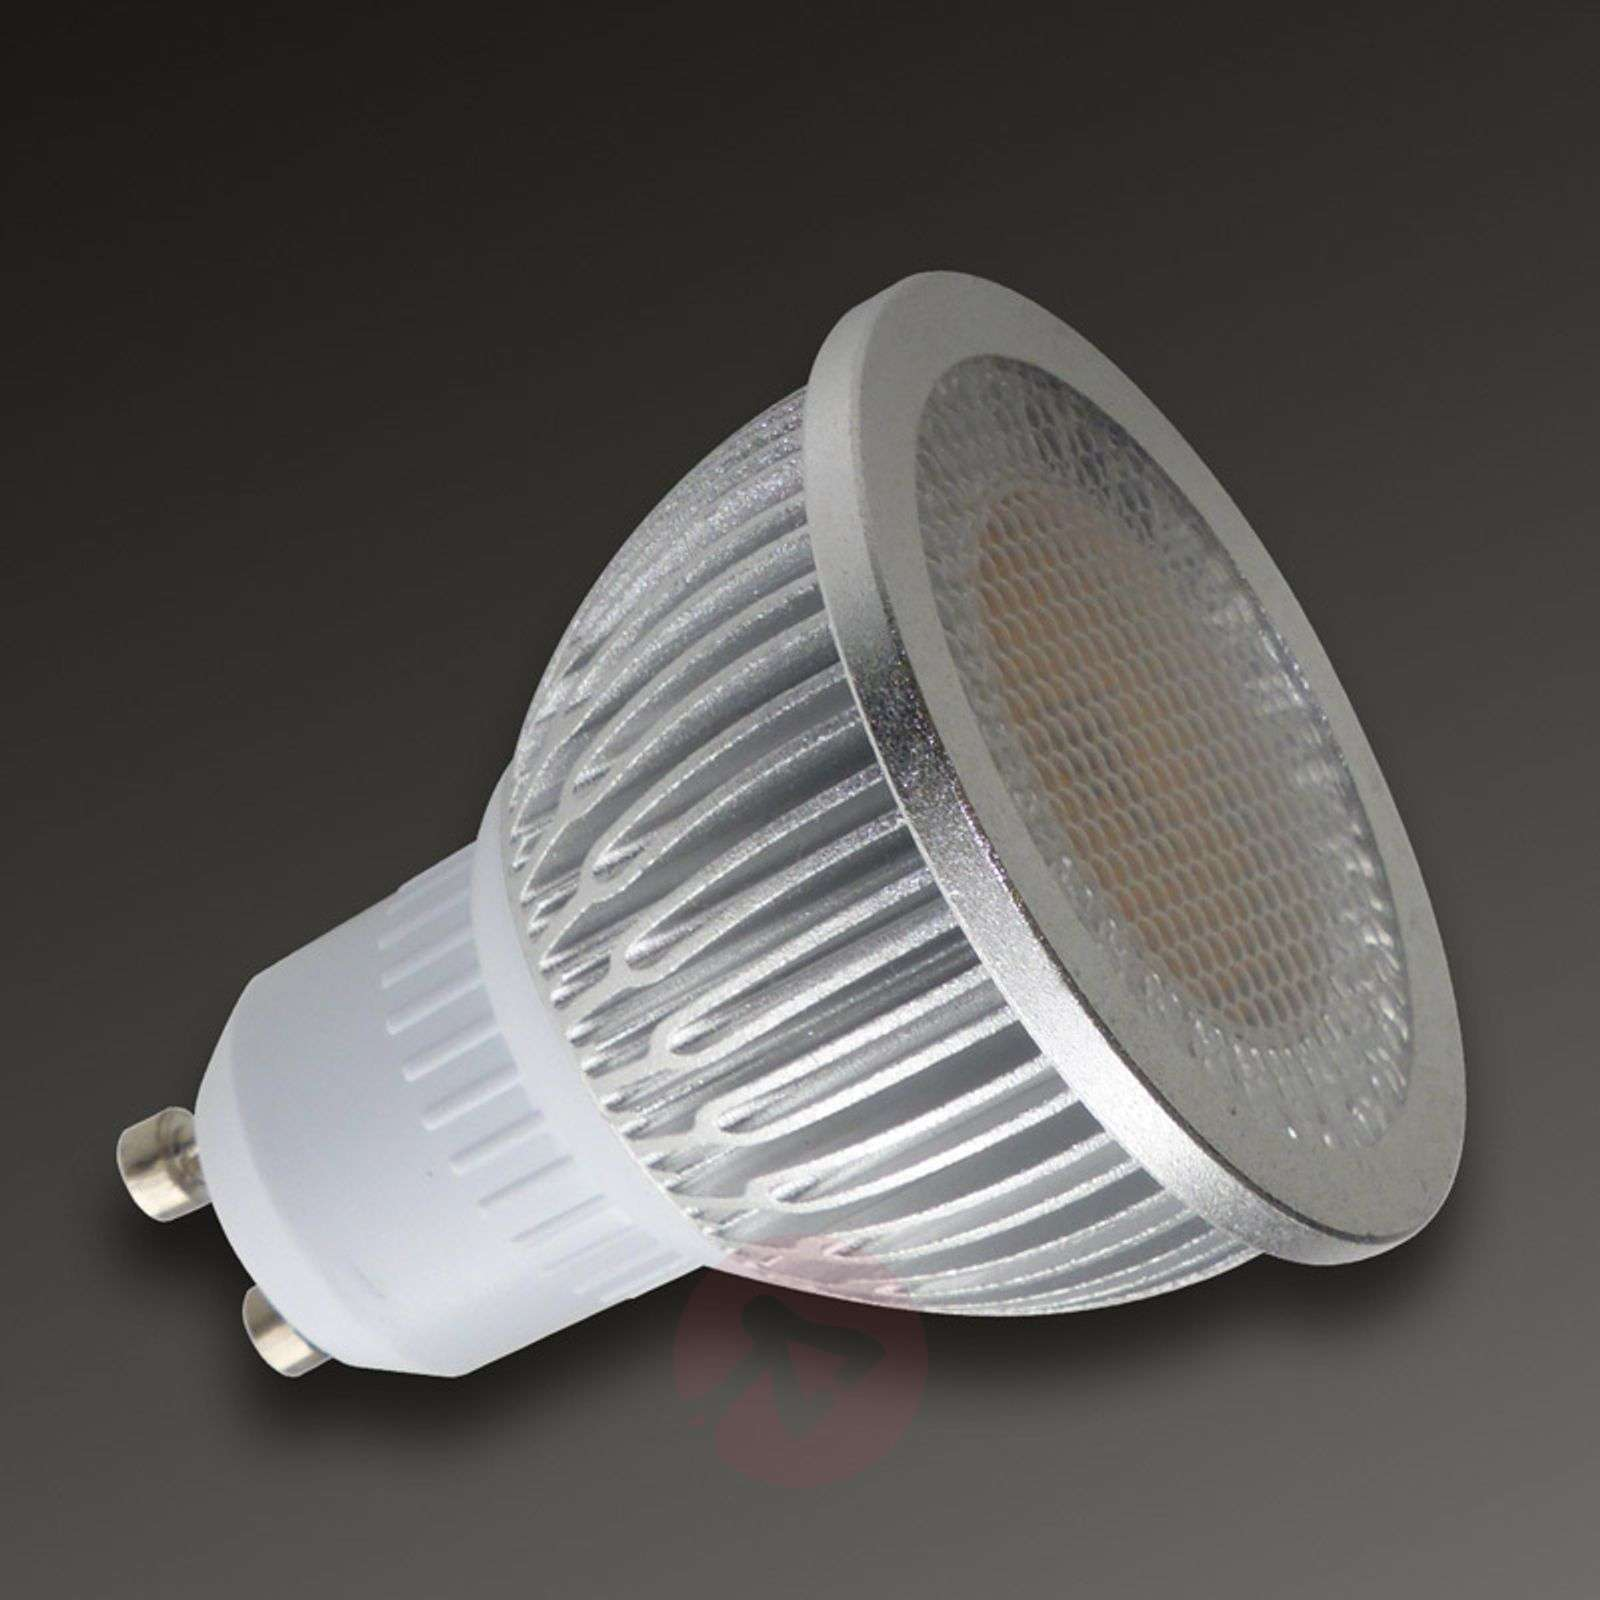 Ampoule LED à réflecteur GU10 5W 830 HT 90degree-9950358-02